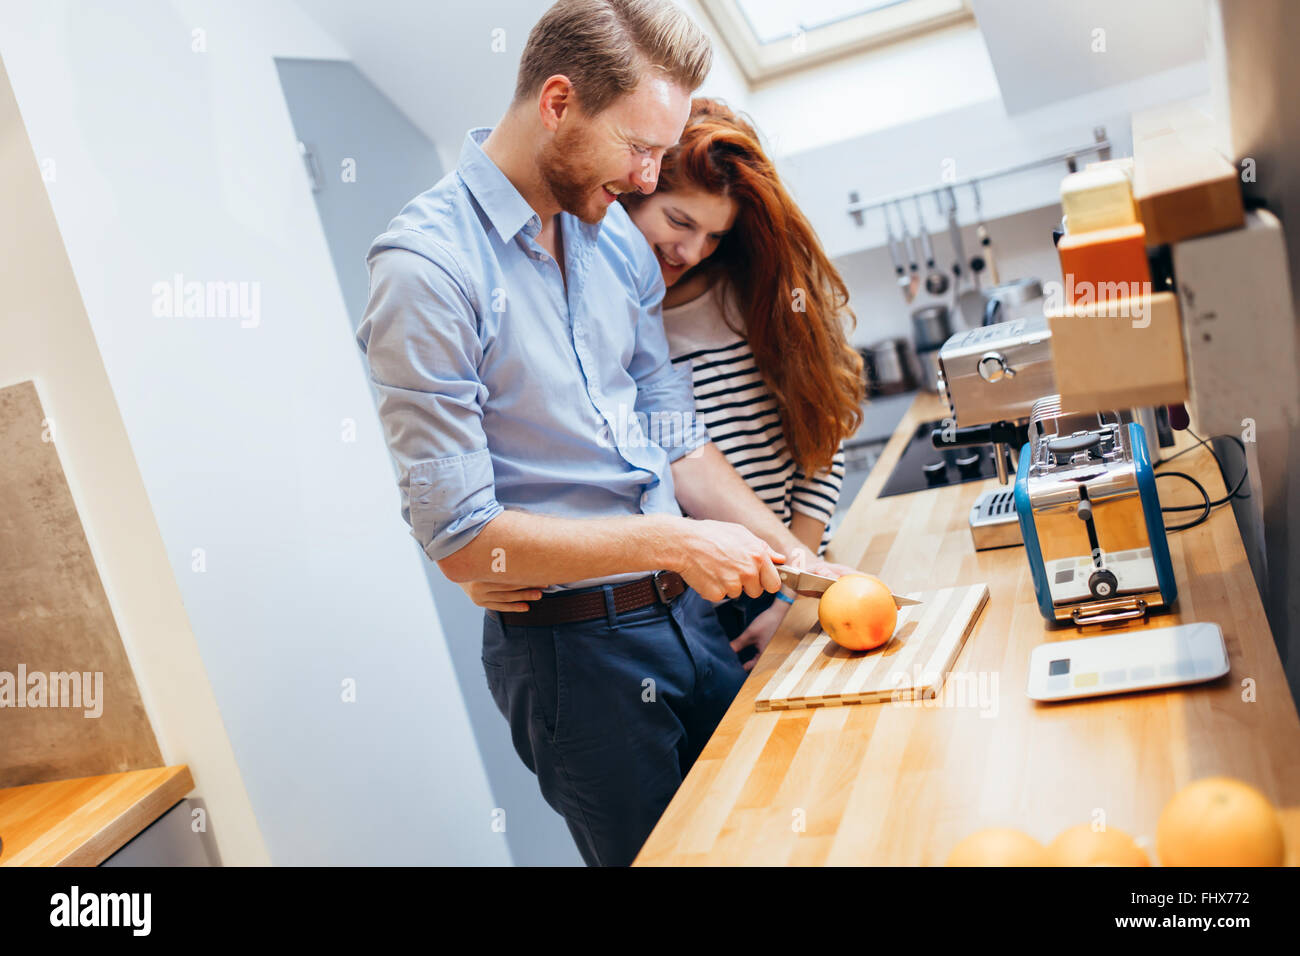 Happy couple making healthy organic juice in kitchen - Stock Image